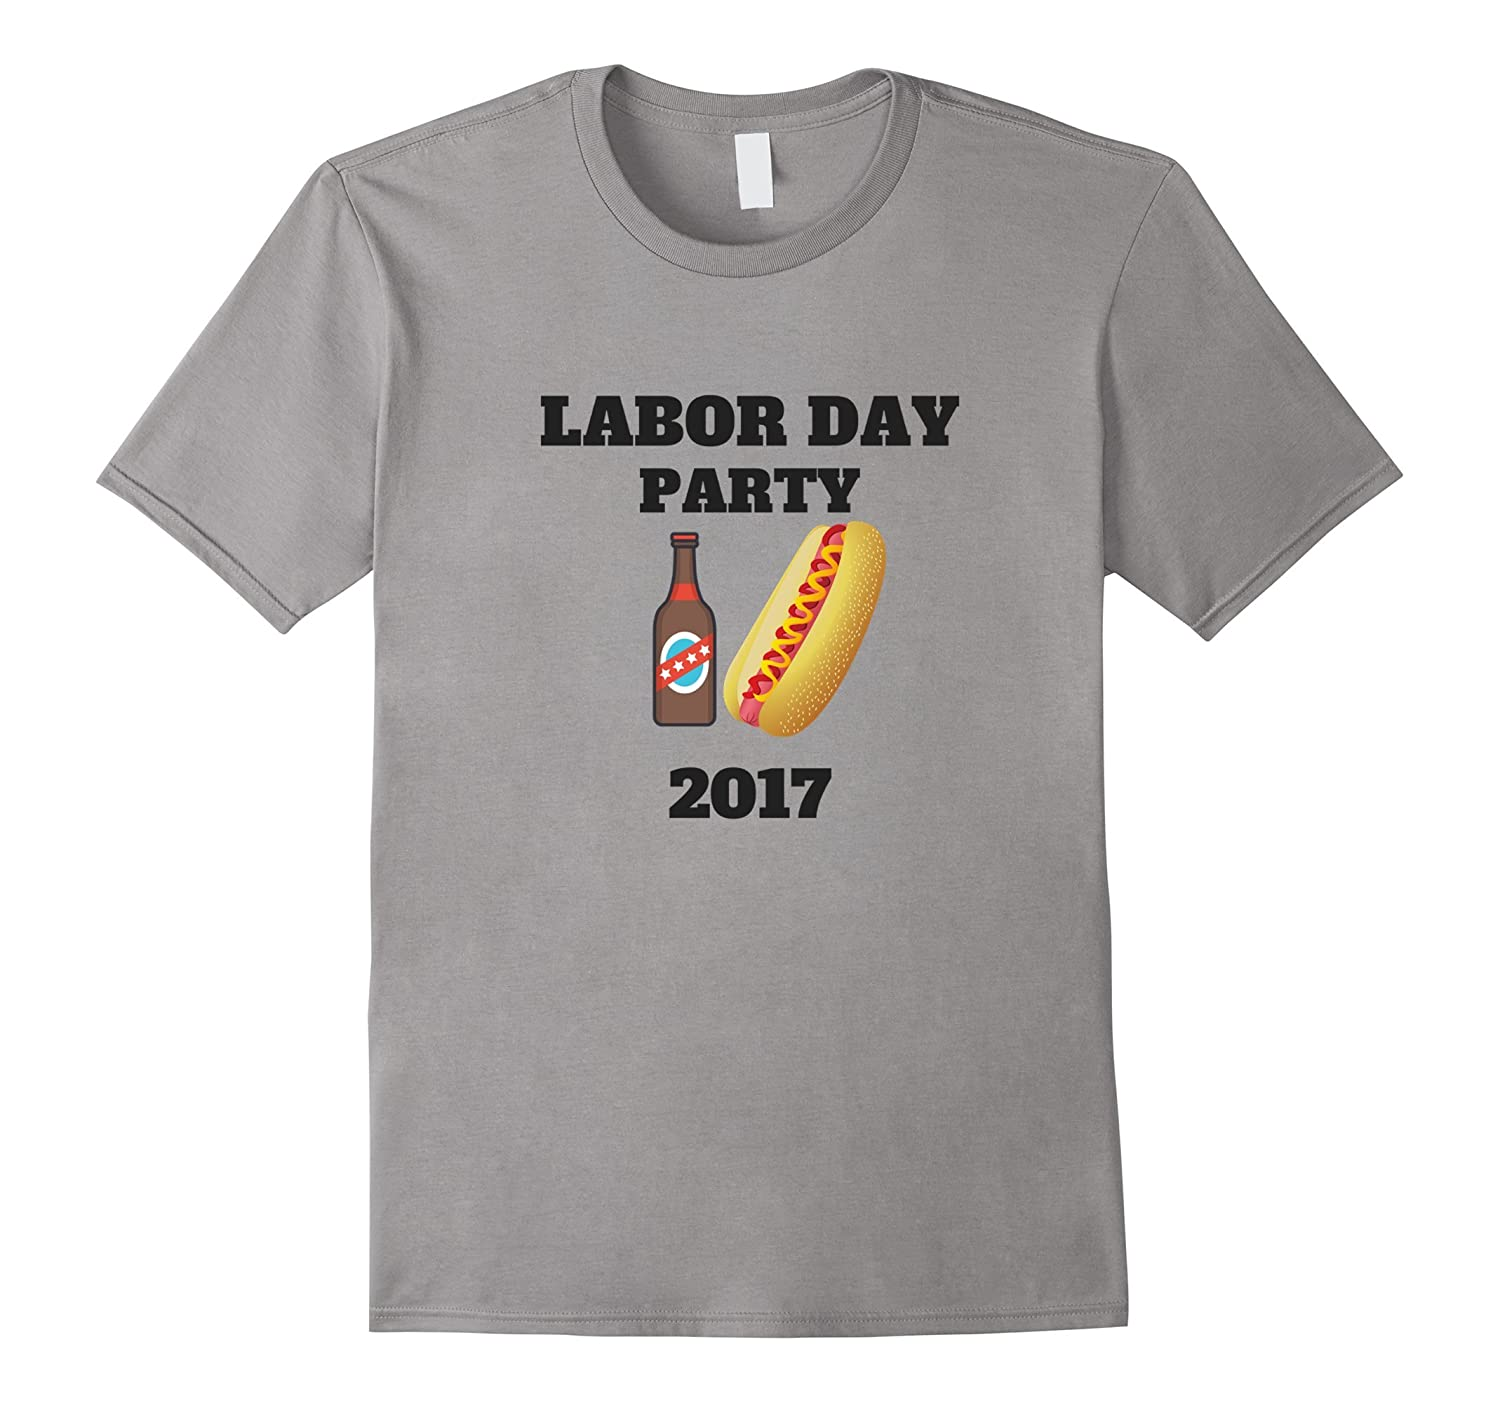 Labor Day Party T shirt 2017-BN